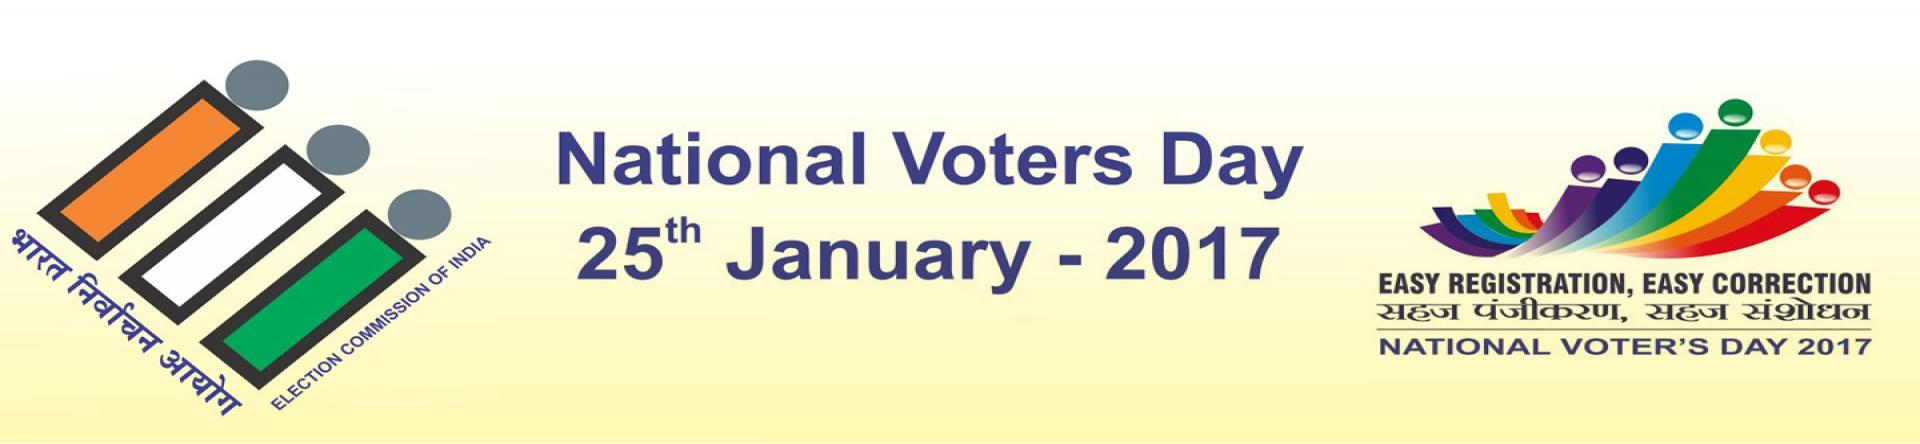 National Voter's Day - Easy Registration, Easy Correction